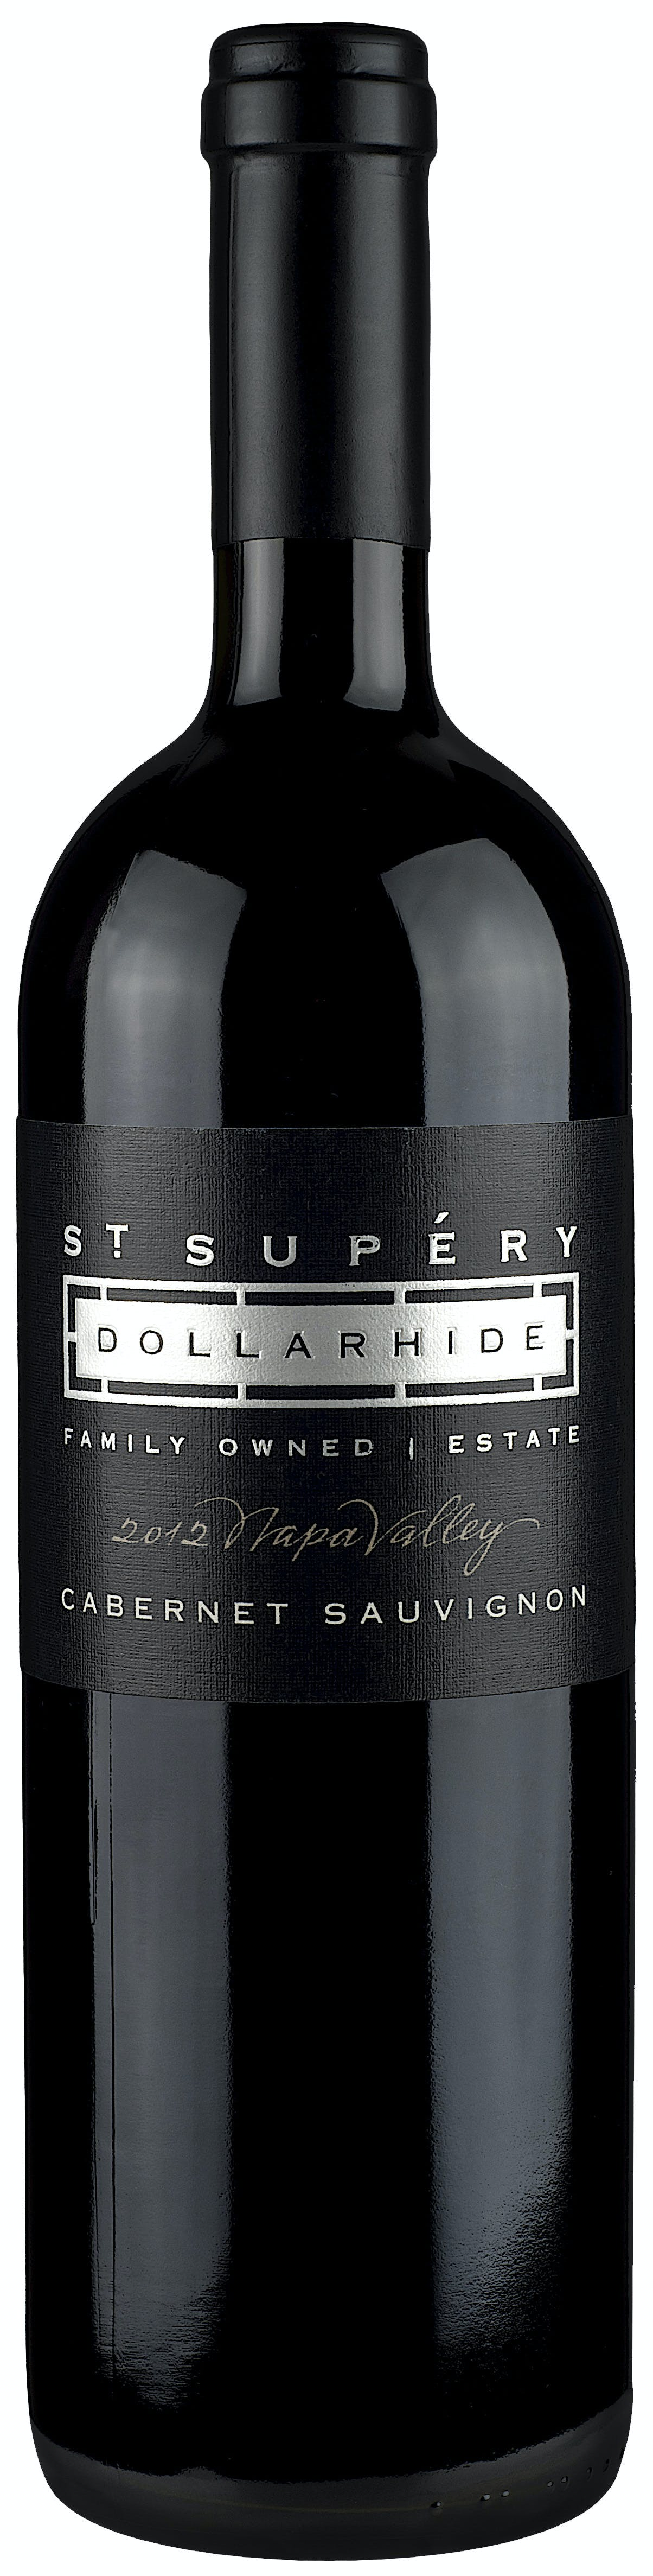 St Supery Limited Edition Dollarhide Ranch Cabernet